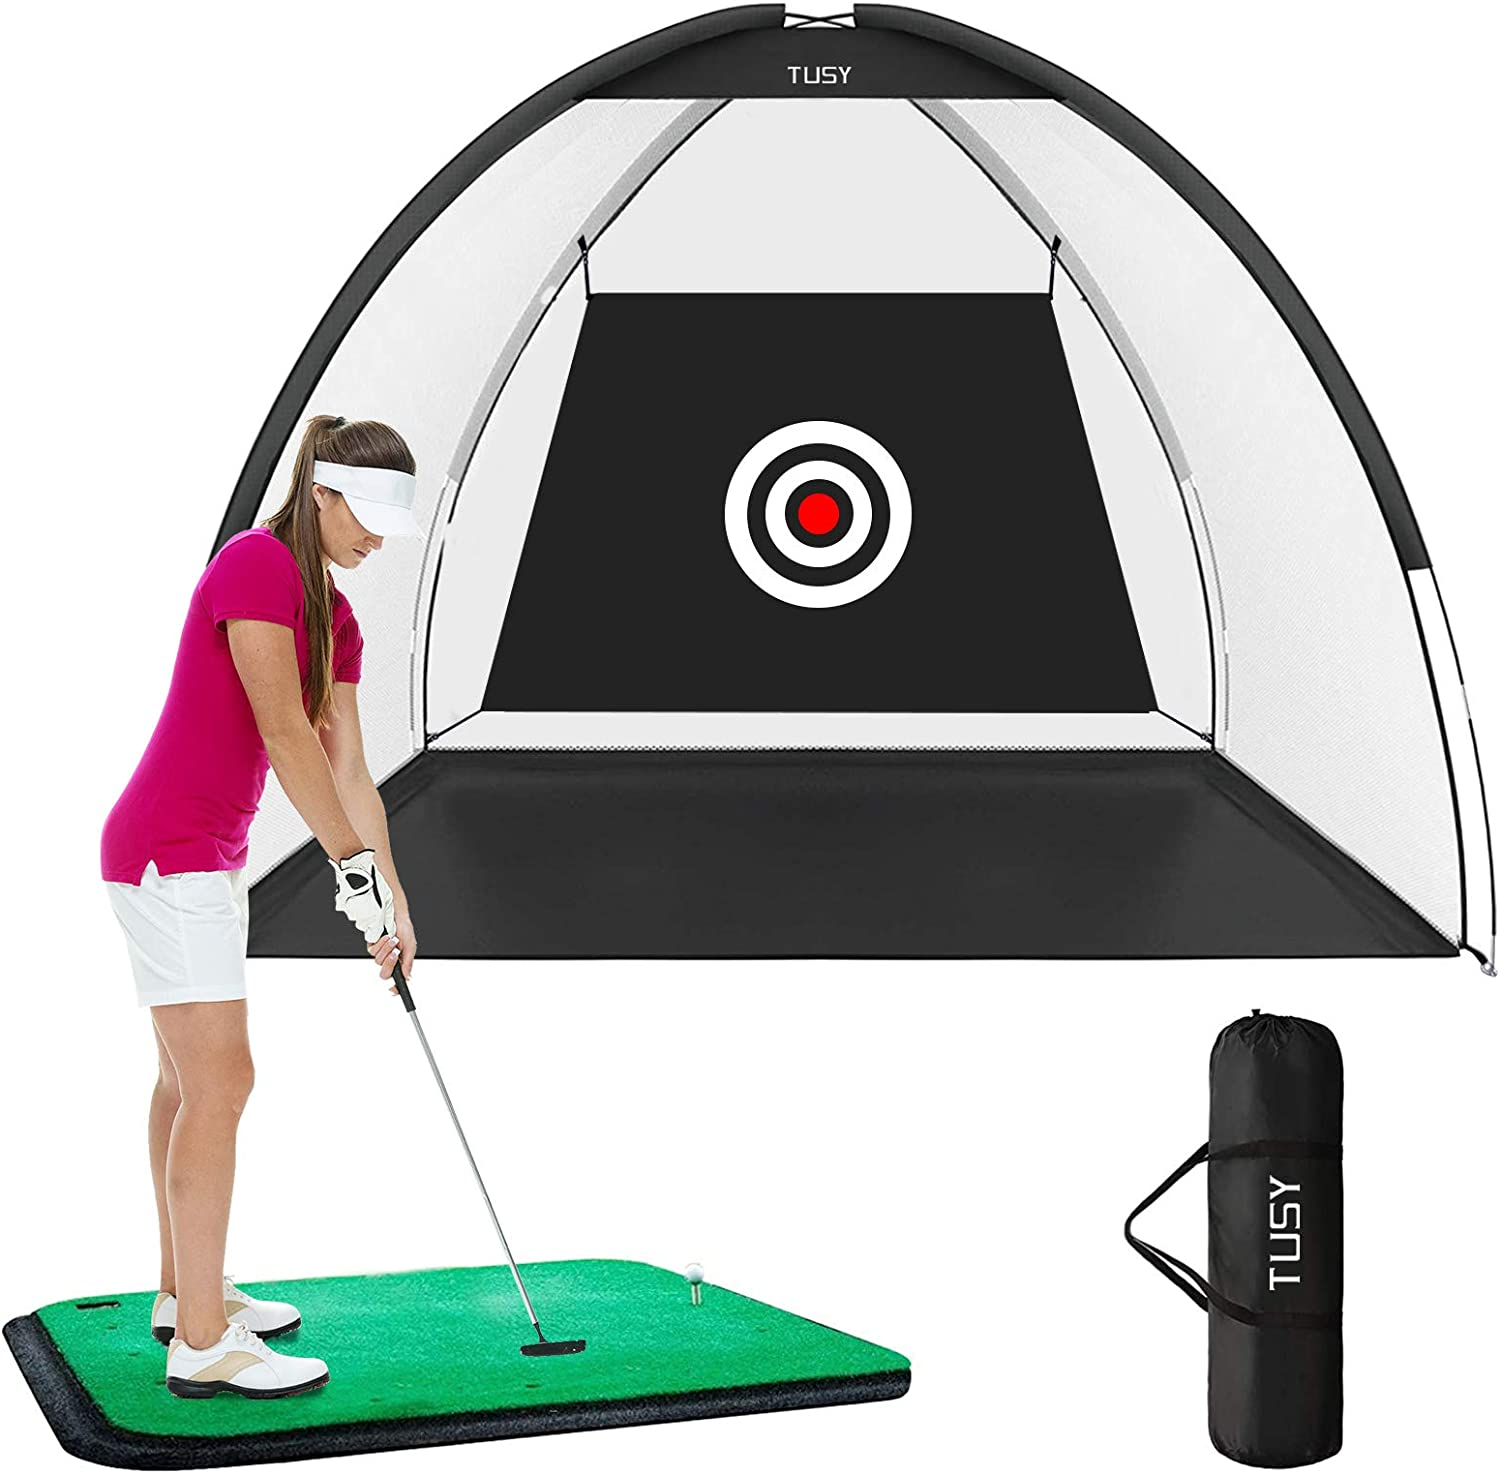 TUSY Golf Net Golf Hitting Nets Training Aids Golf Nets for Backyard Driving Range Chipping Practice with Target Sheet Carry Bag for Indoor & Outdoor Sports : Sports & Outdoors